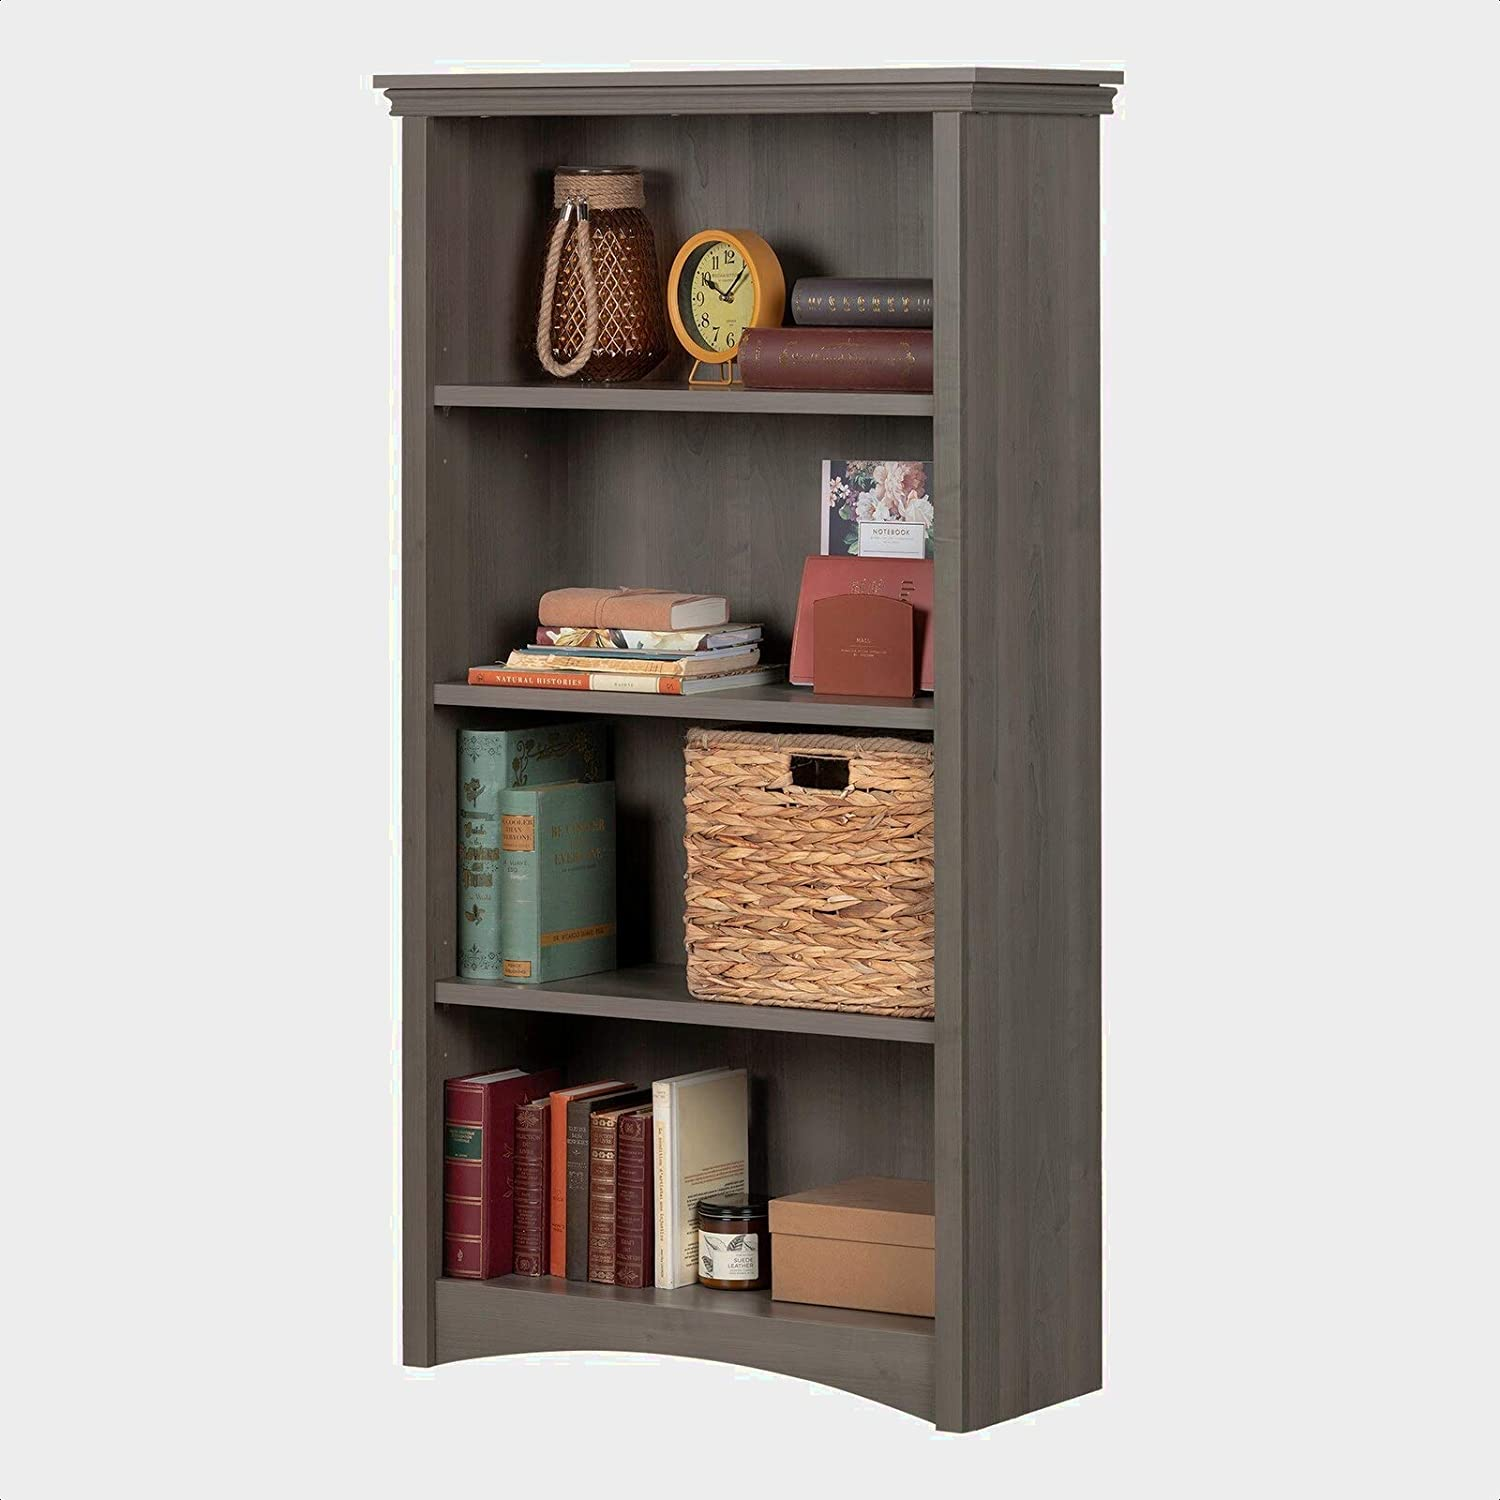 Artwork Standard Bookcase Brand new 25% OFF Tipover Restraint Ad Included Device